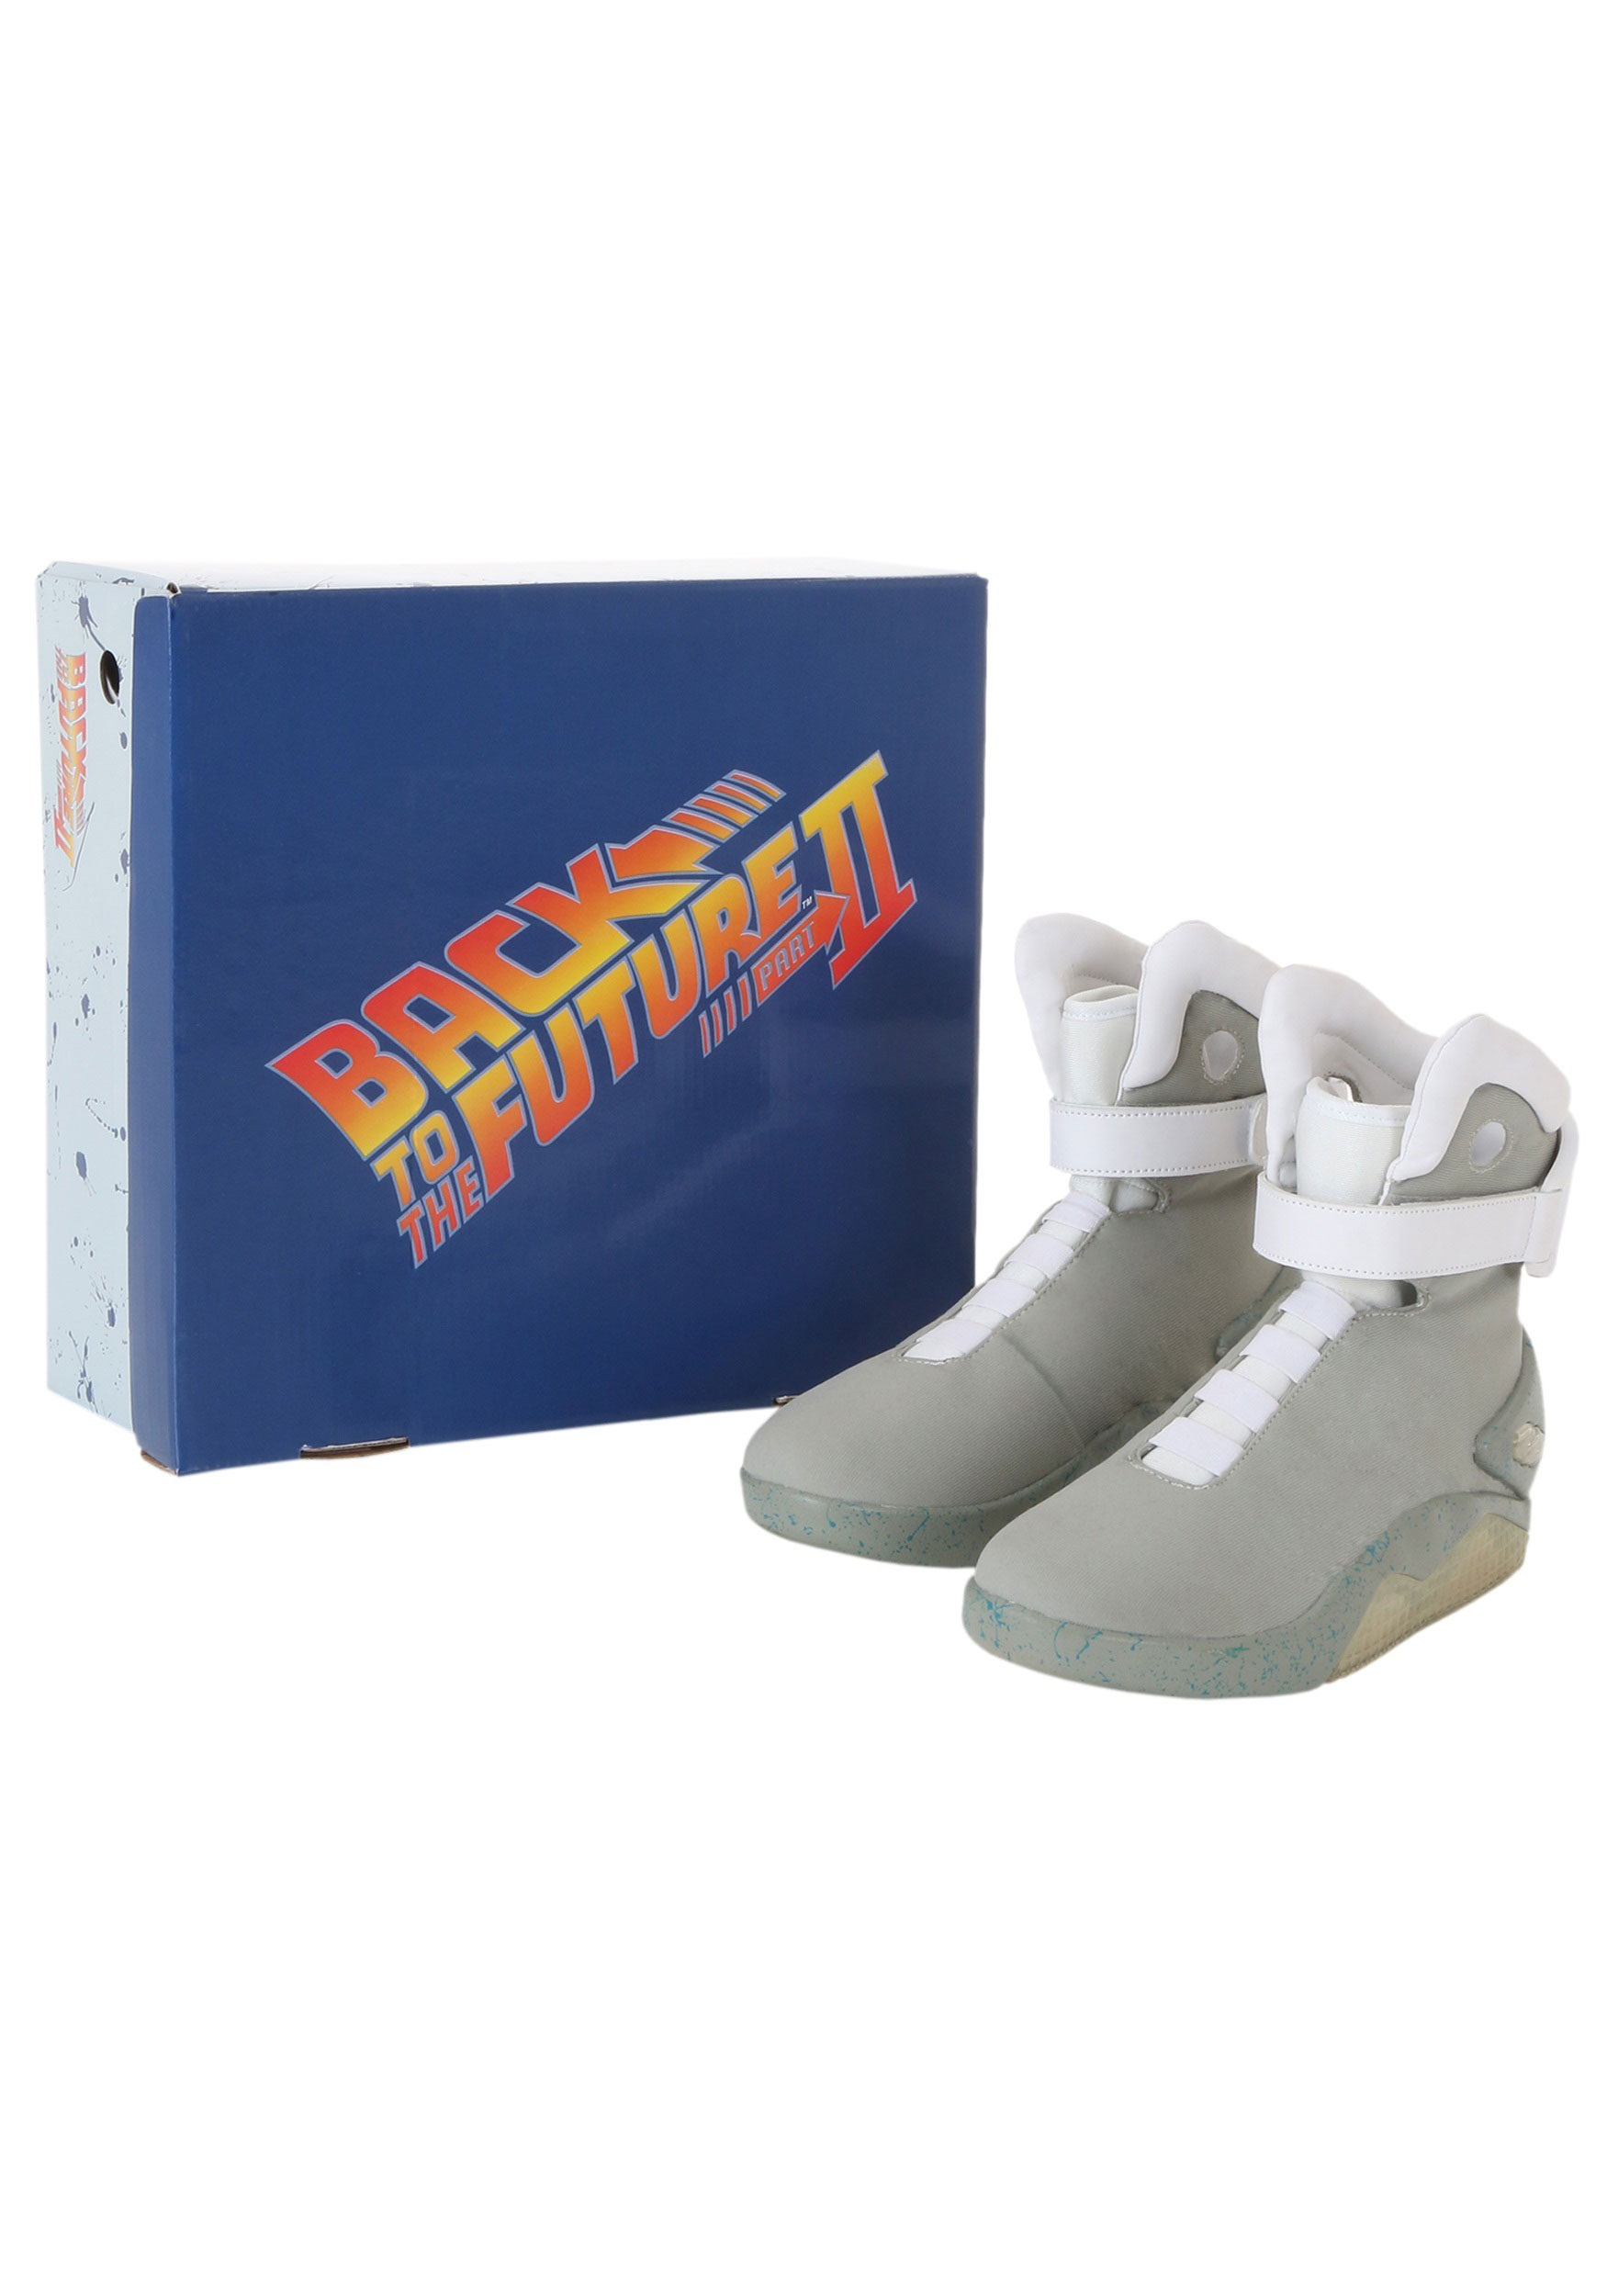 BACK TO THE FUTURE AIR MAG LIGHT UP STRAPS SET Marty Mcfly 2015 80s for shoes